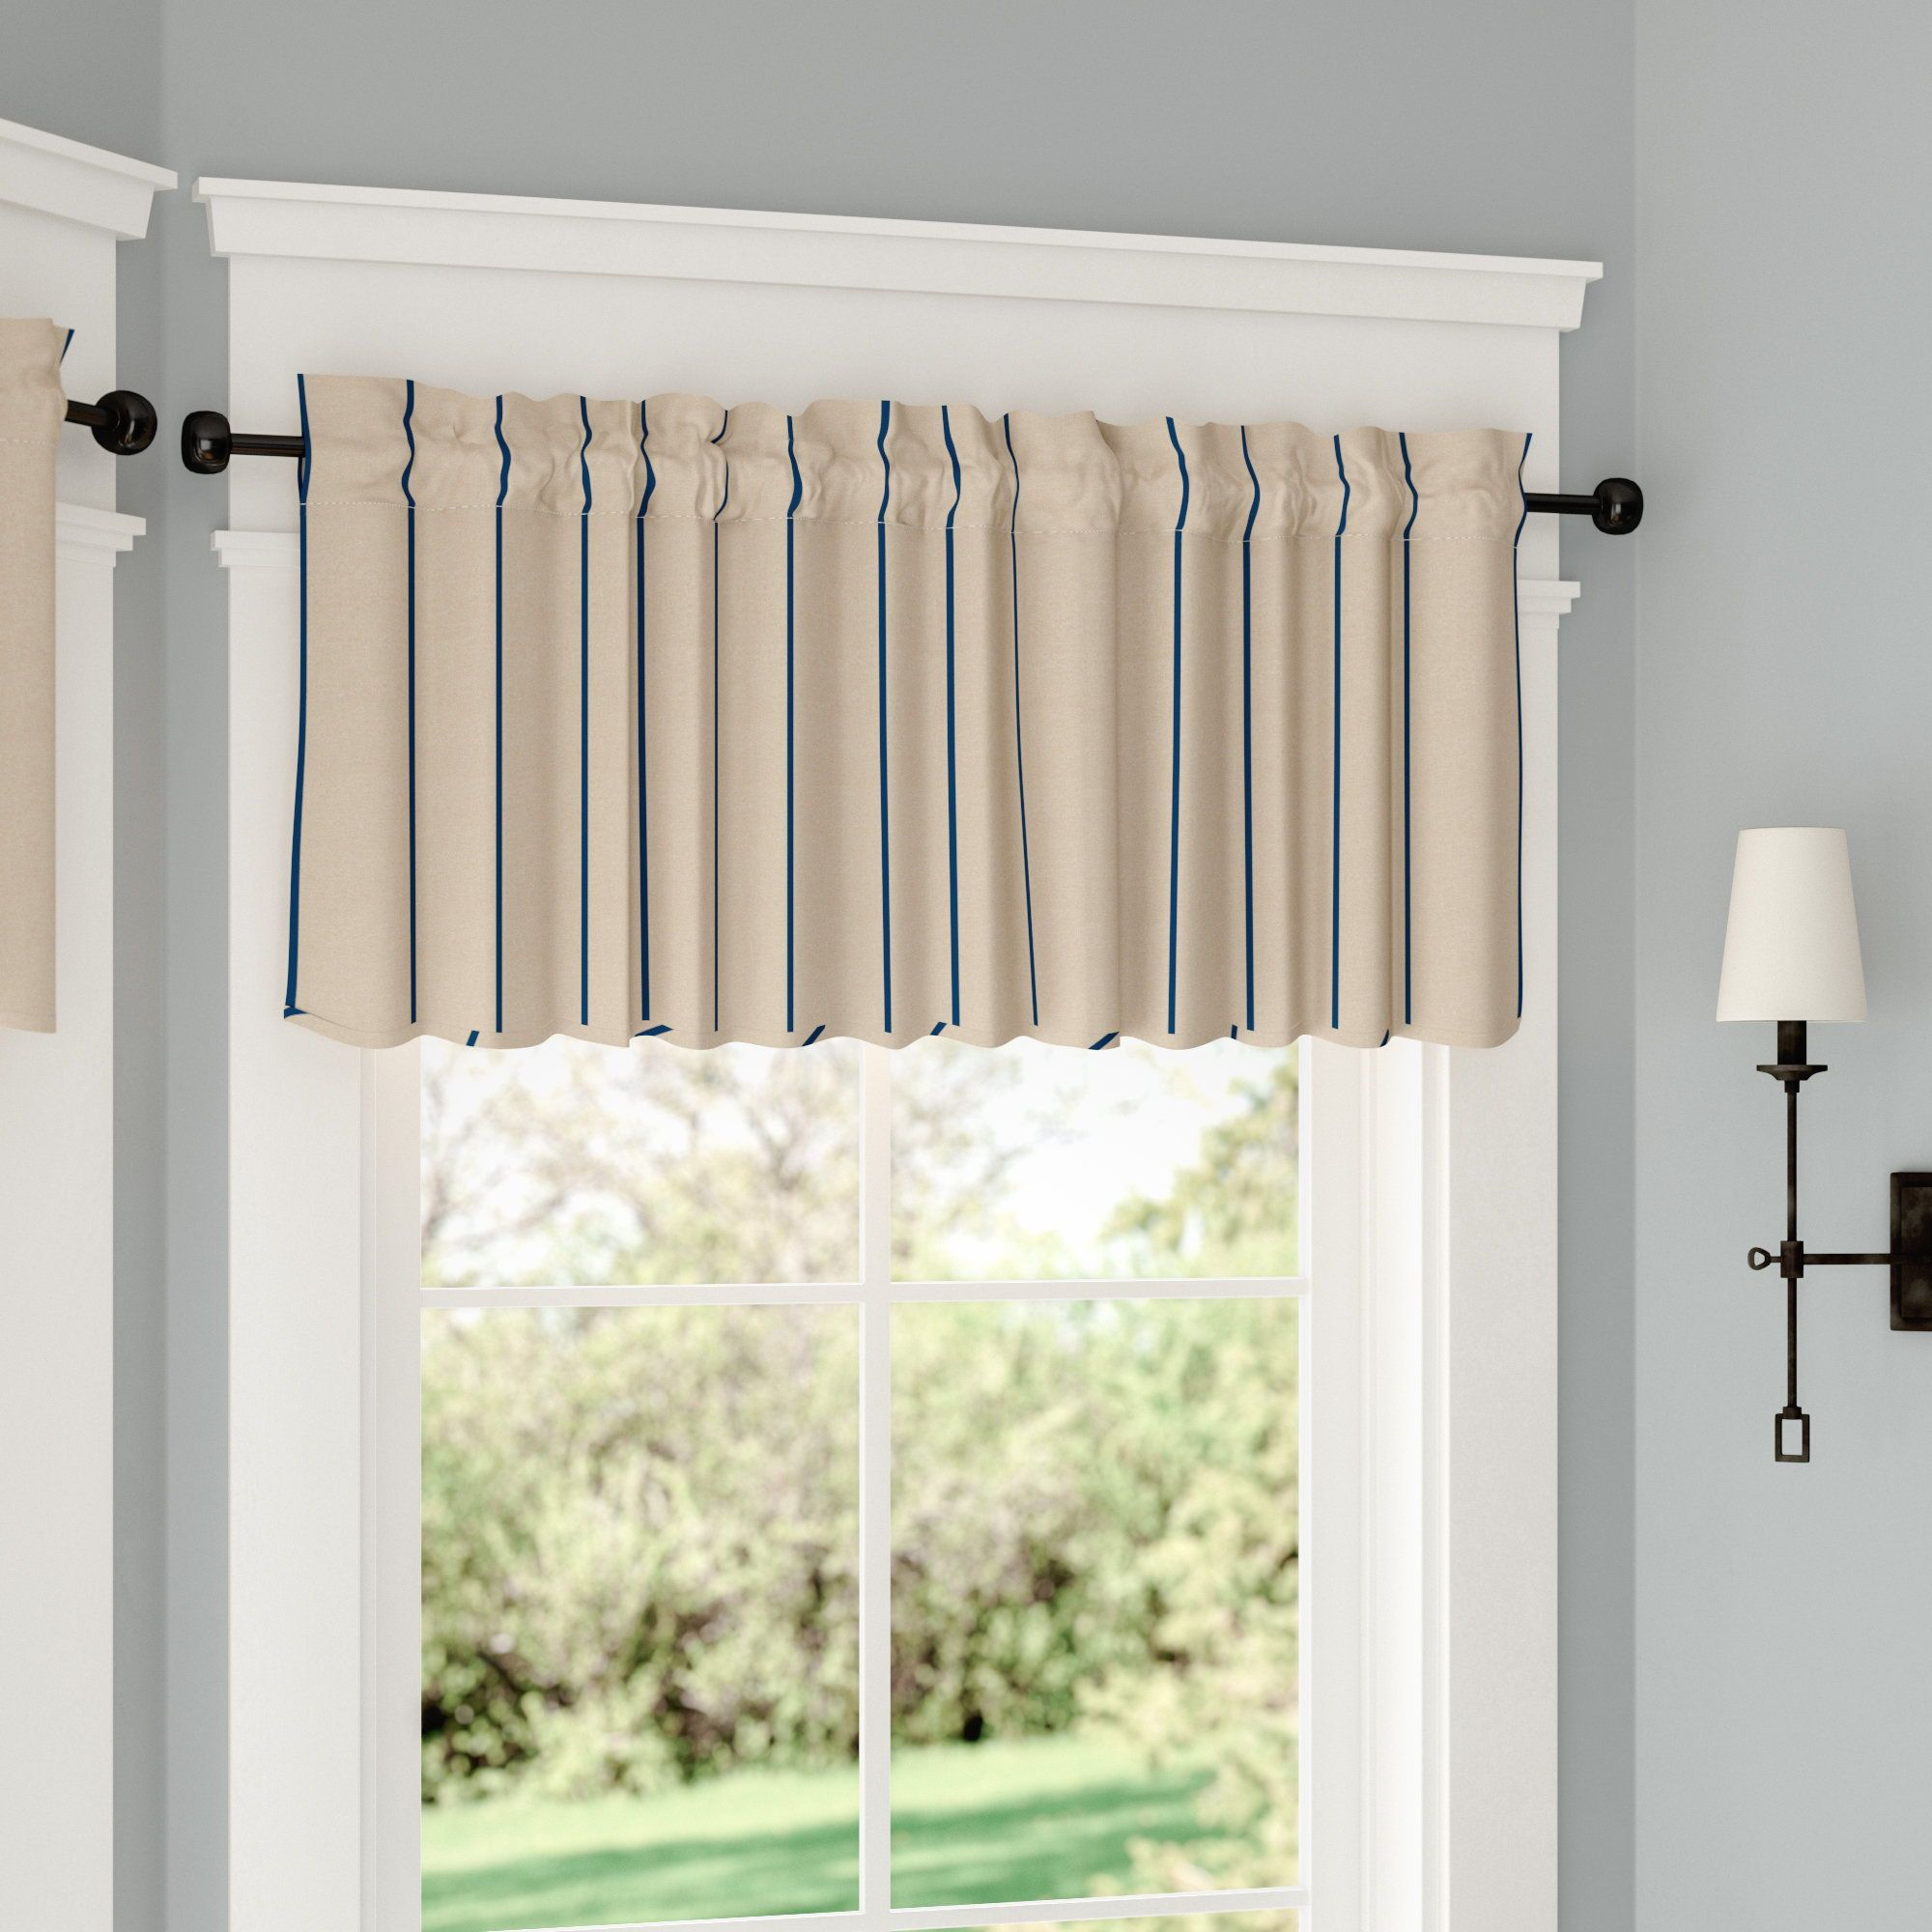 Farmhouse Valances Rustic Valances Farmhouse Goals Rustic Valances Farmhouse Valances Rustic Window Treatments